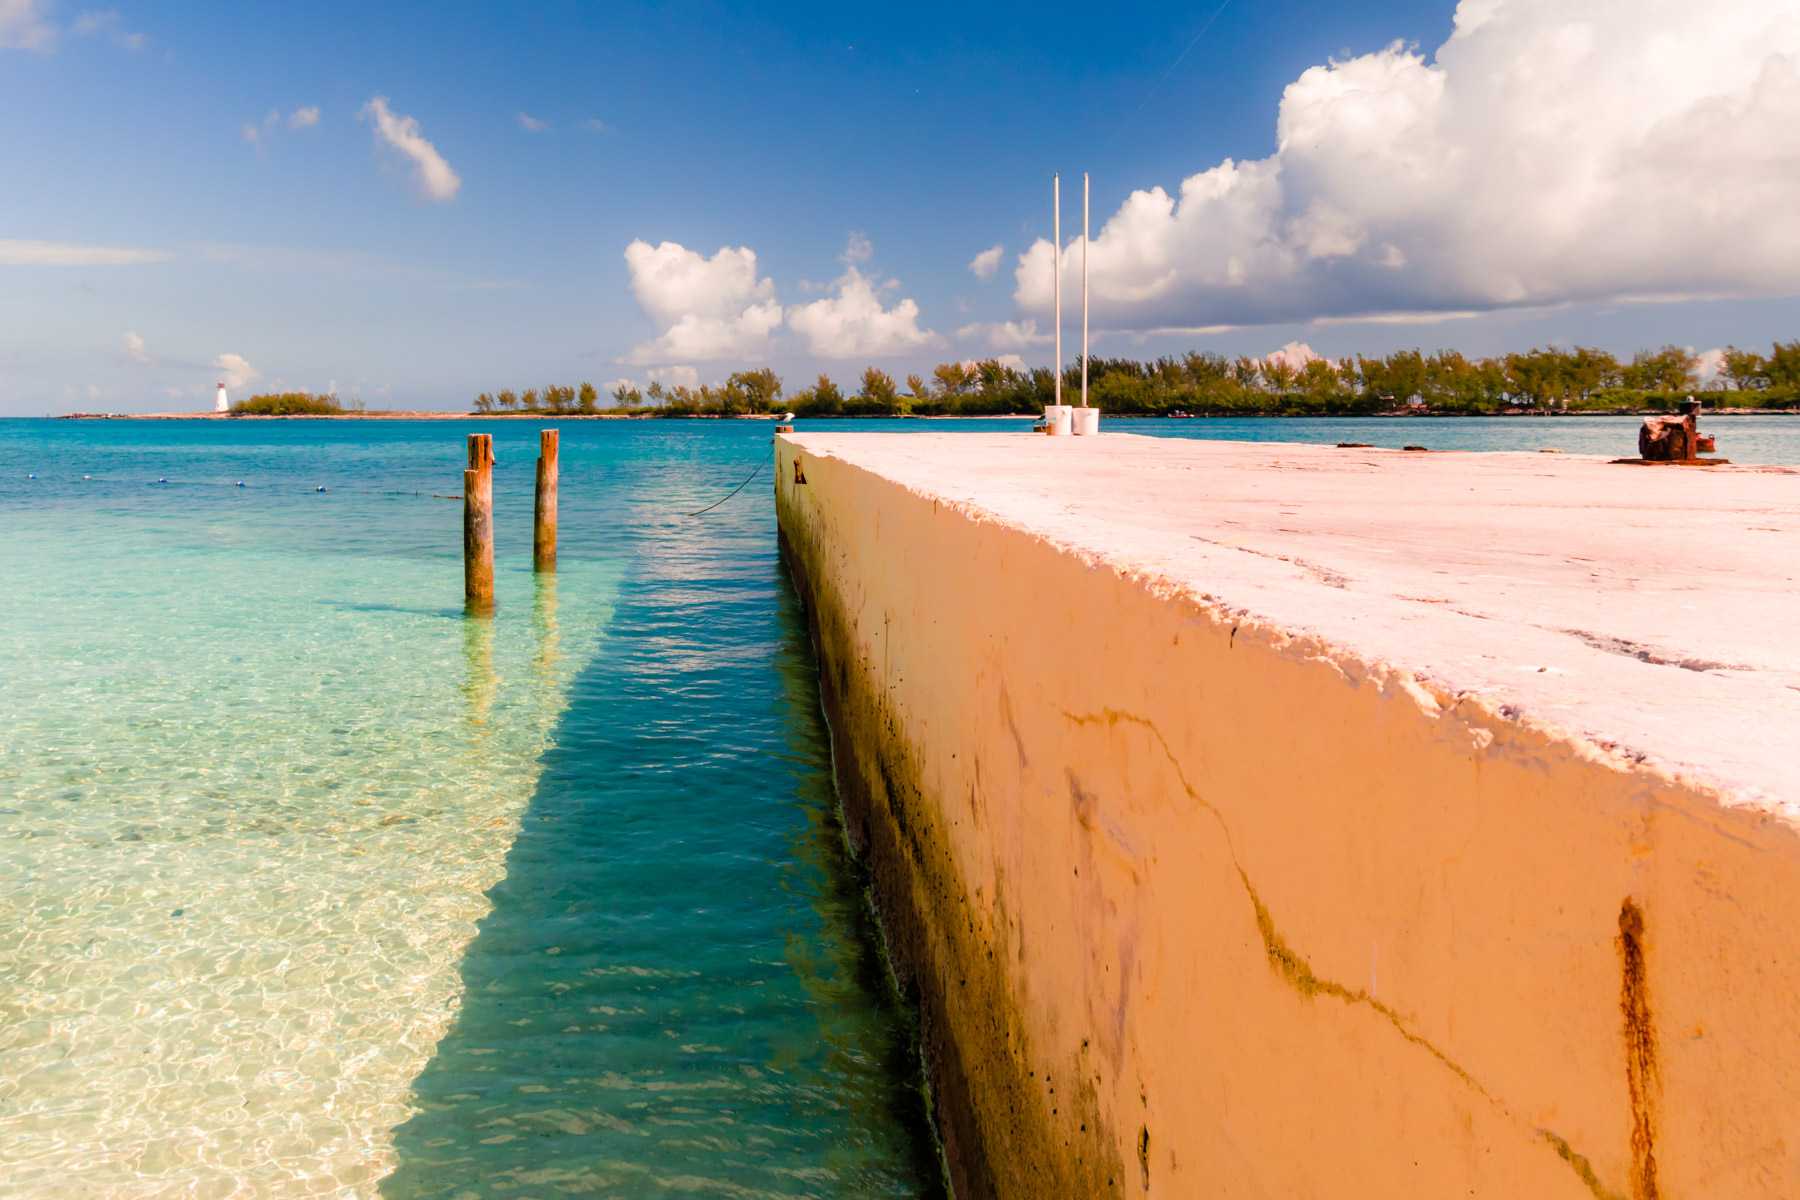 A barrier extends from the beach into the harbour at Nassau, Bahamas.